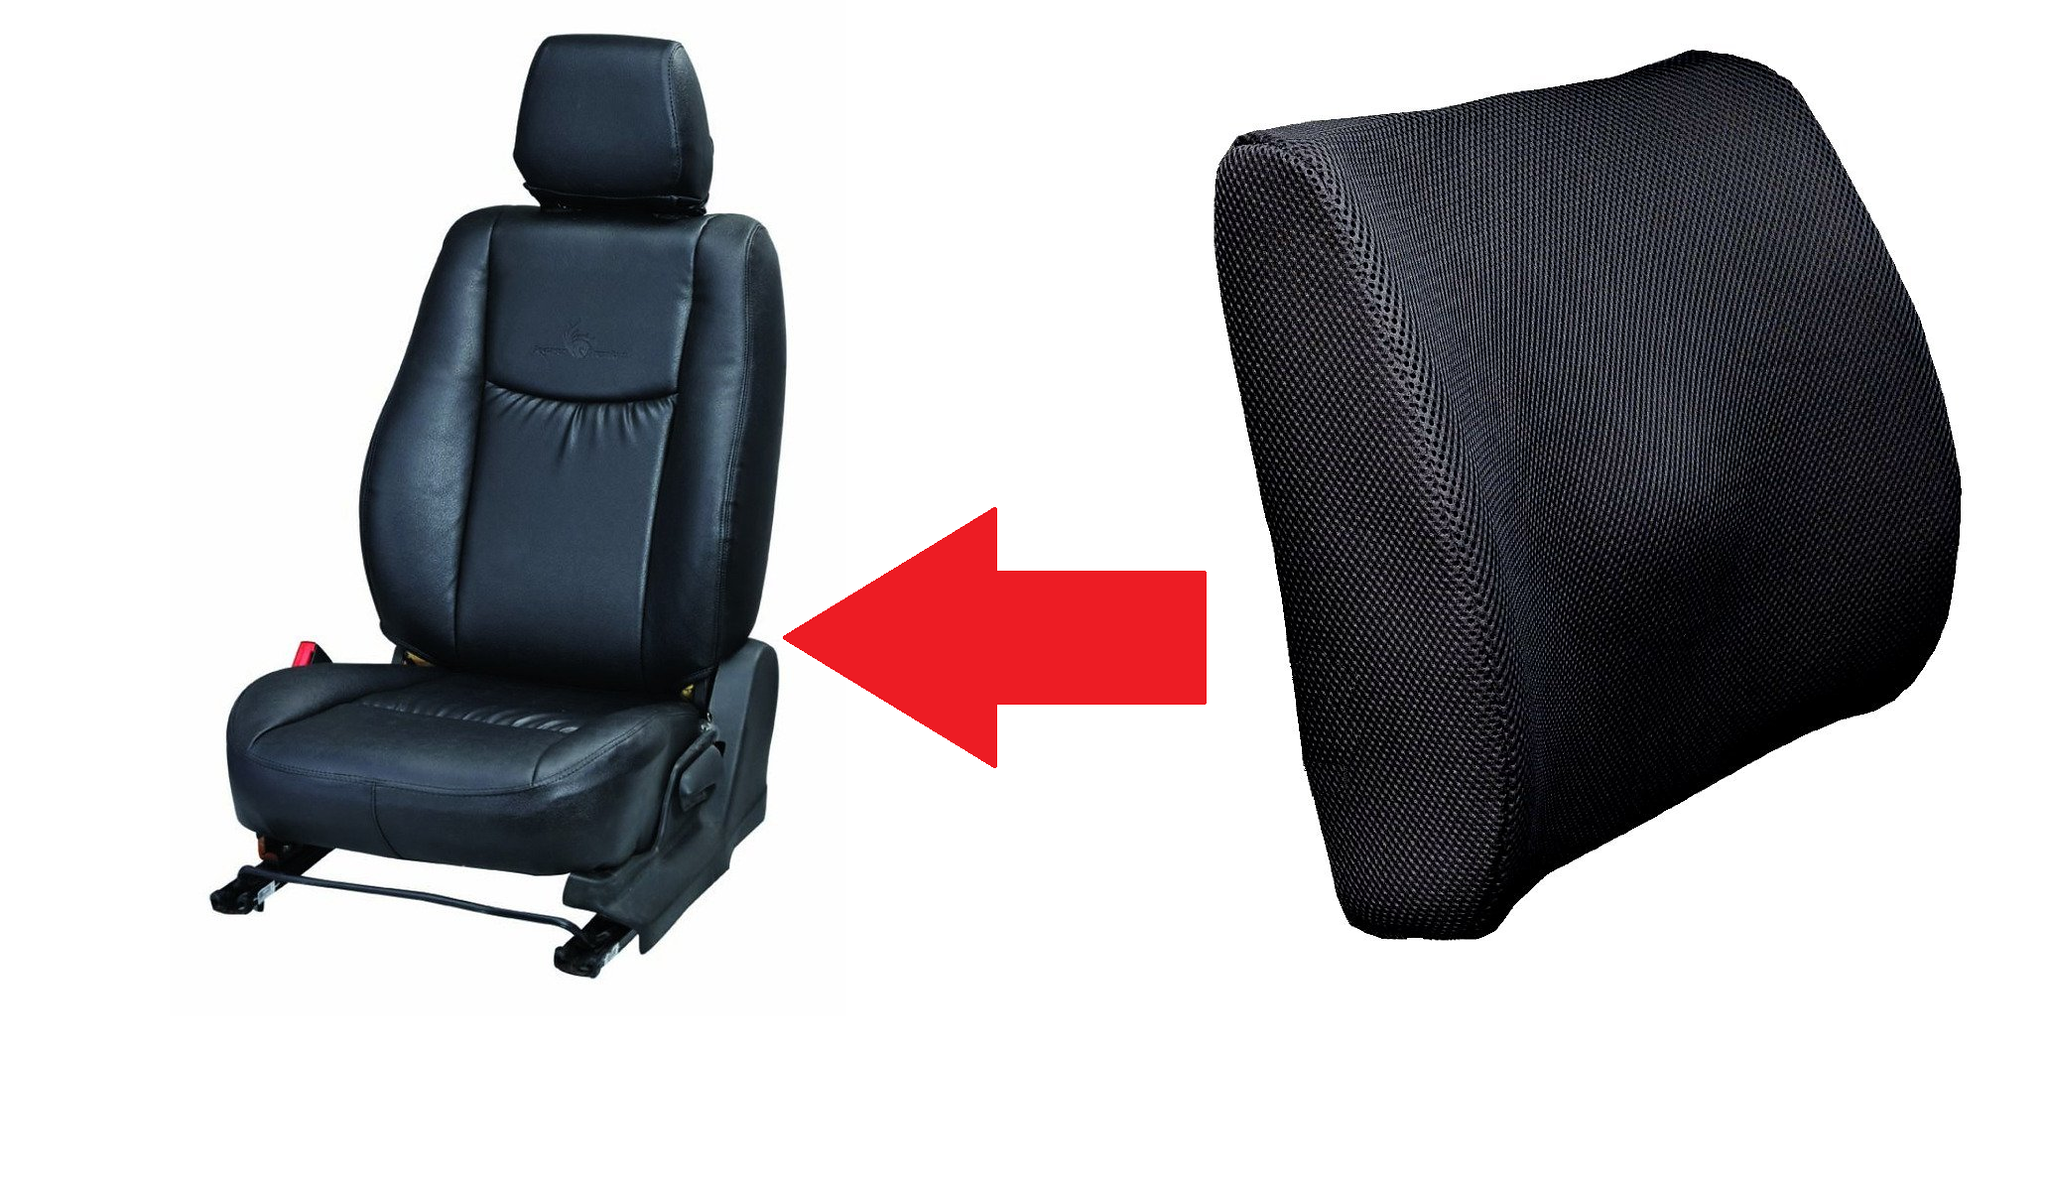 Office Chair Pillow on office chair microfiber, office chair commode, massage table pillow, office chair for fat people, office chair massager, office chair reading, office chair rug, office chair couch, office chair toy, office chairs for large people, beanbag pillow, office chair cushions, office chair ottoman, computer pillow, office chair slipcover, office chair white, office chair big person, desk pillow, office chair pad,